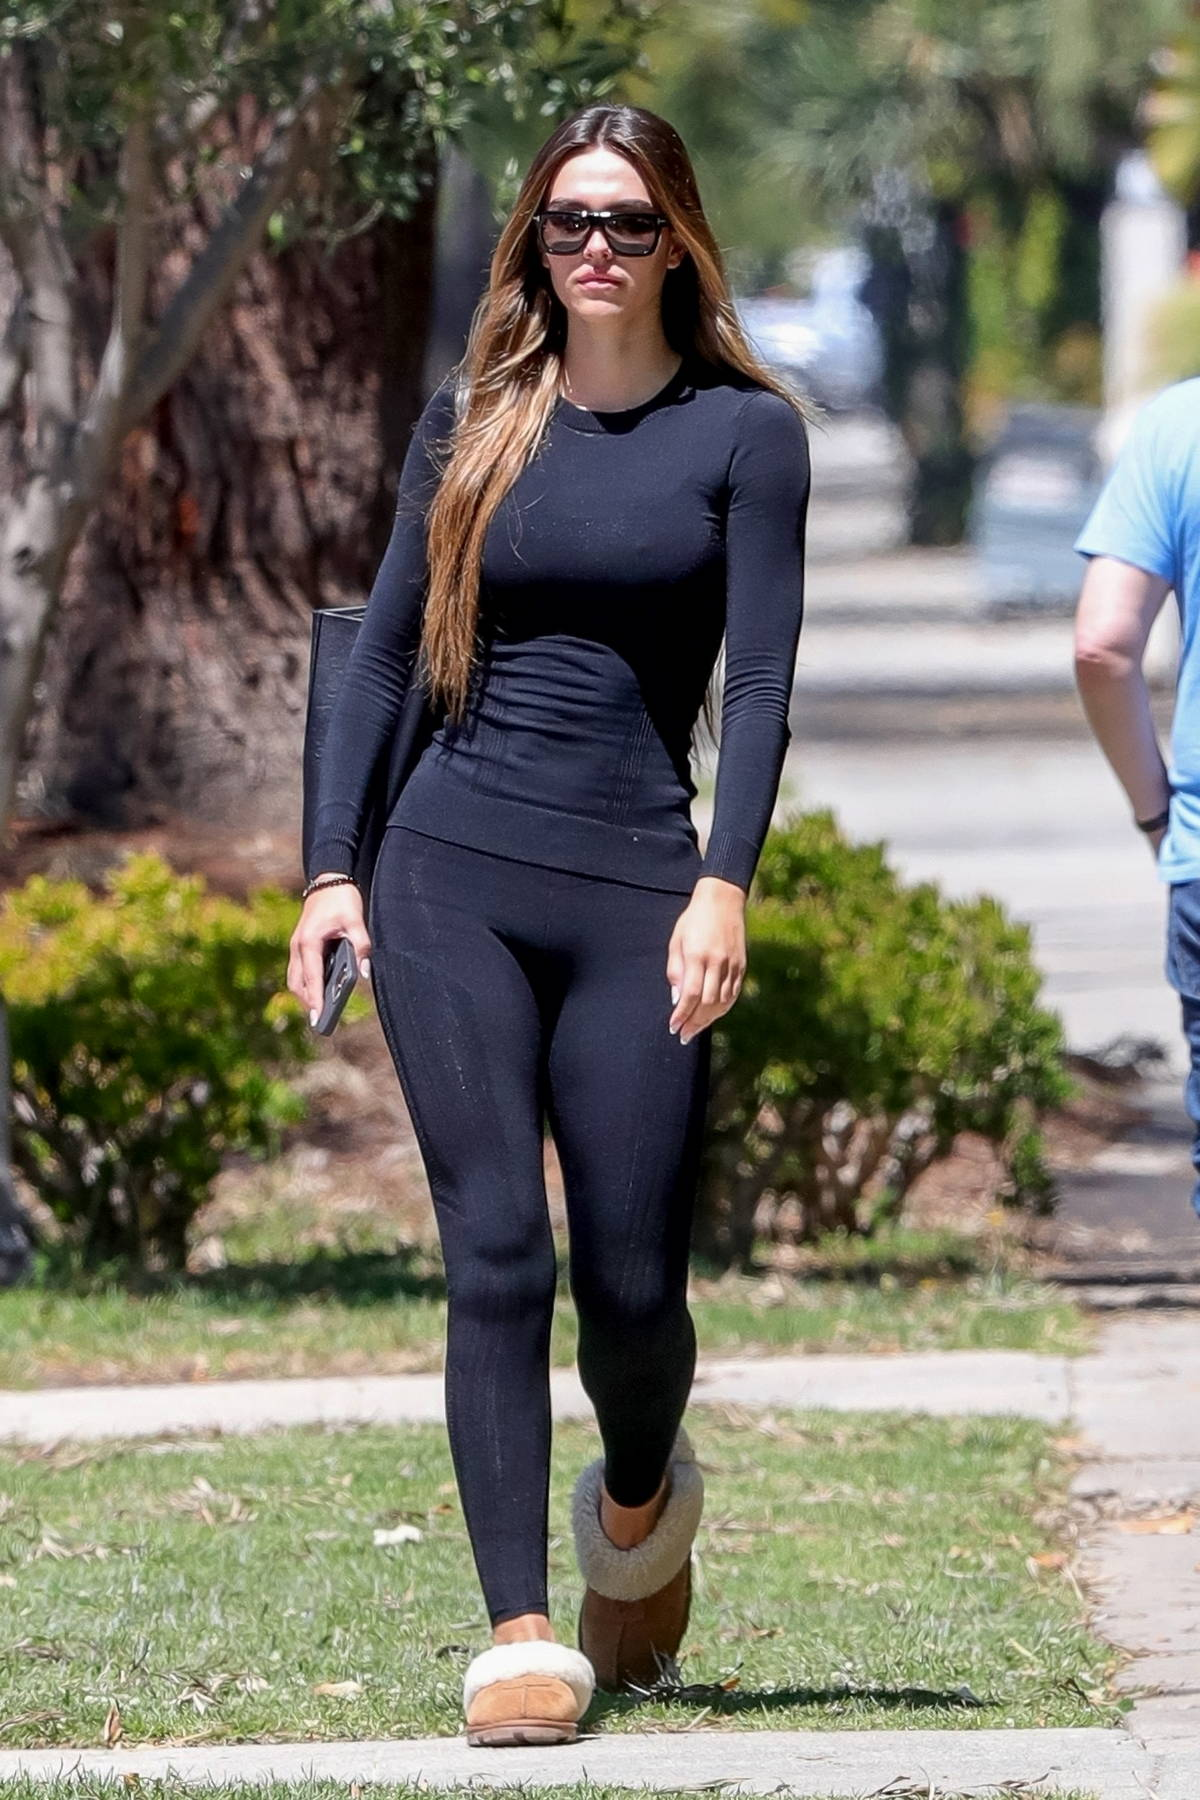 Amelia Hamlin leaves her Pilates class sporting a full-sleeve black top and leggings in West Hollywood, California